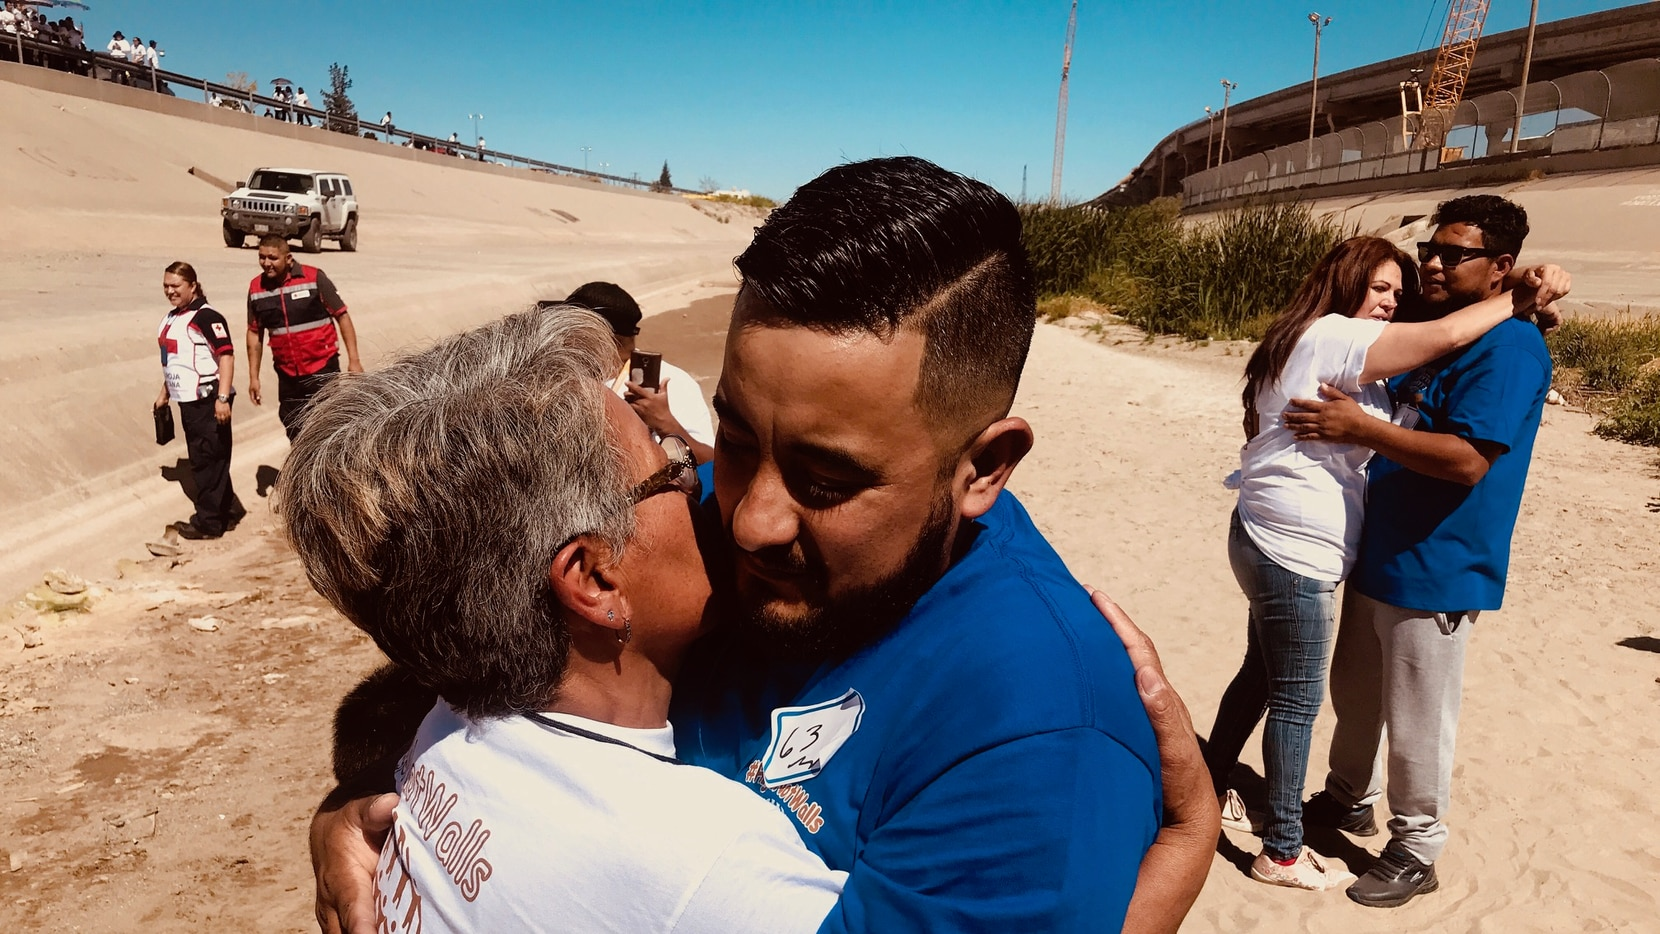 Erik Jimenez and Ana Maria Zavala hugged each other for the first time in 17 years. They were reunited Saturday on the dividing line between the United States and Mexico.